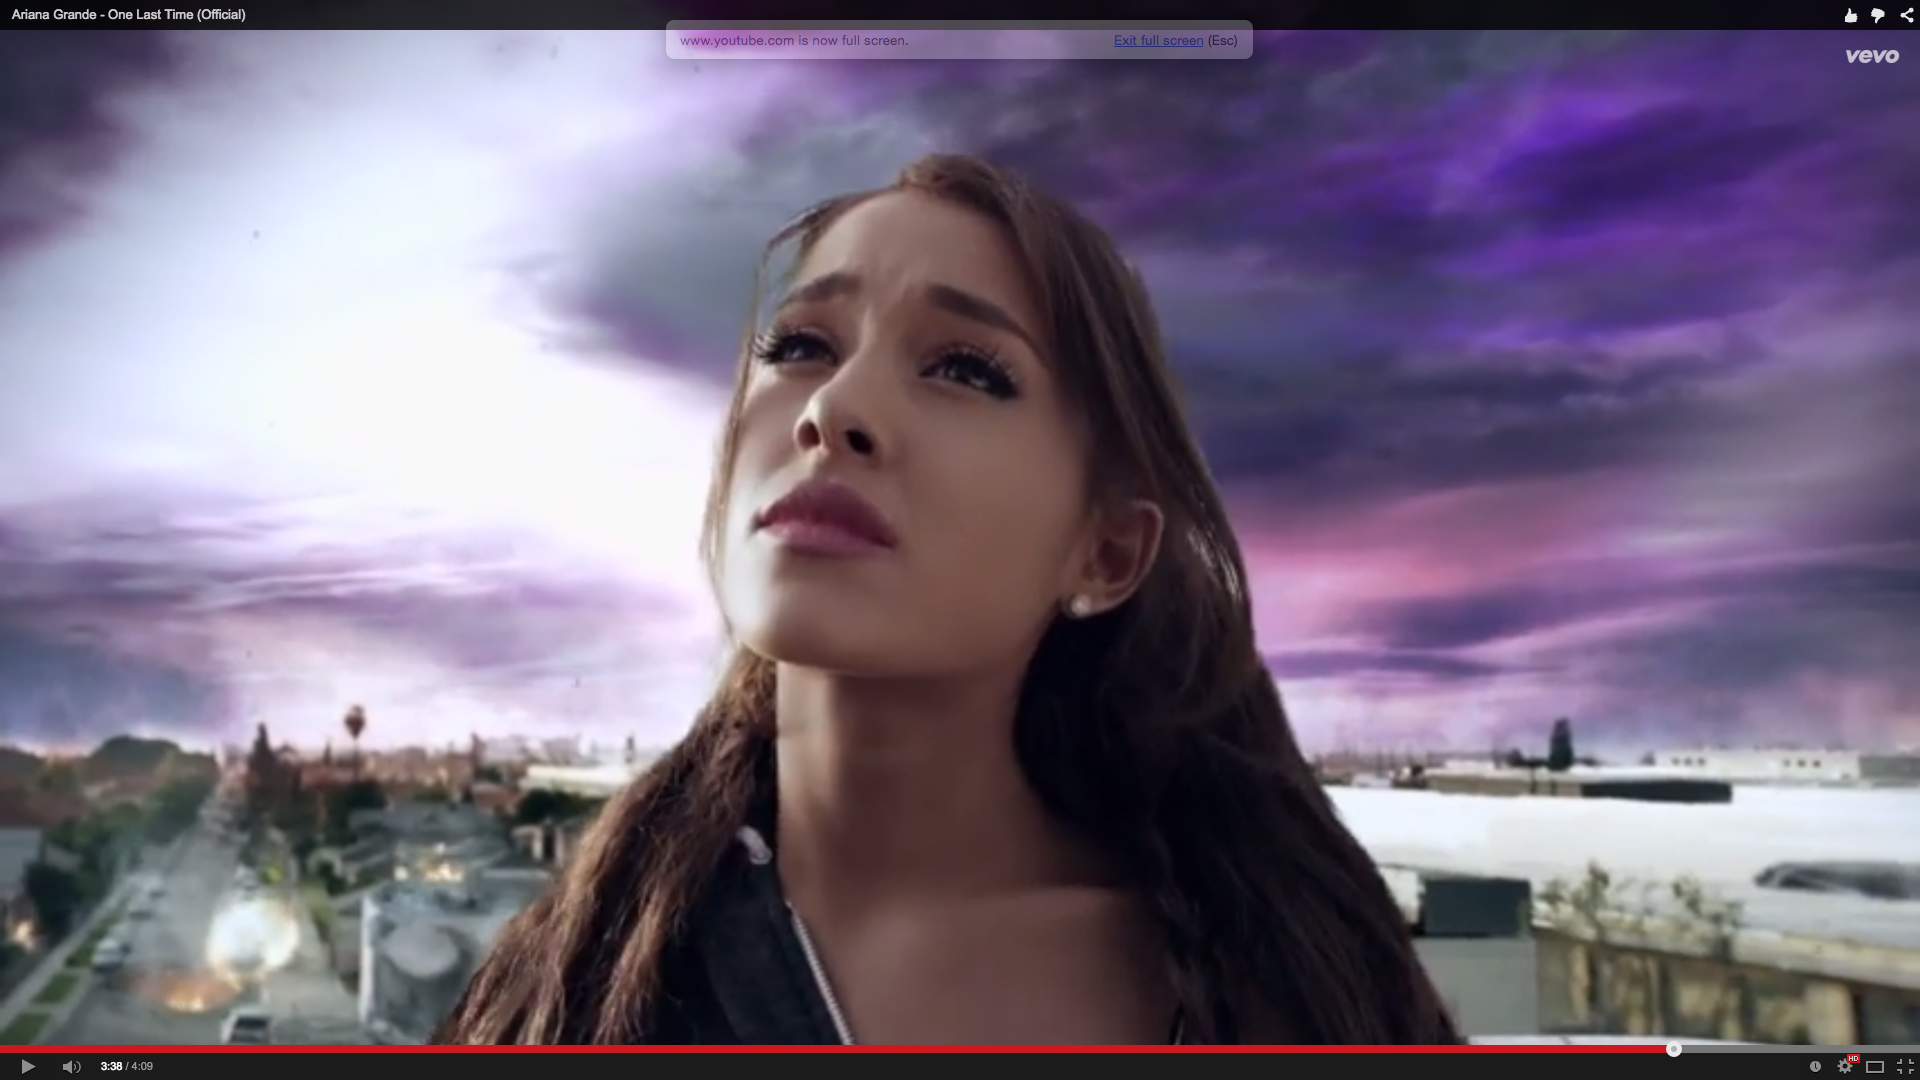 Watch Ariana Grandes Catastrophic One Last Time Video Rolling 1920x1080